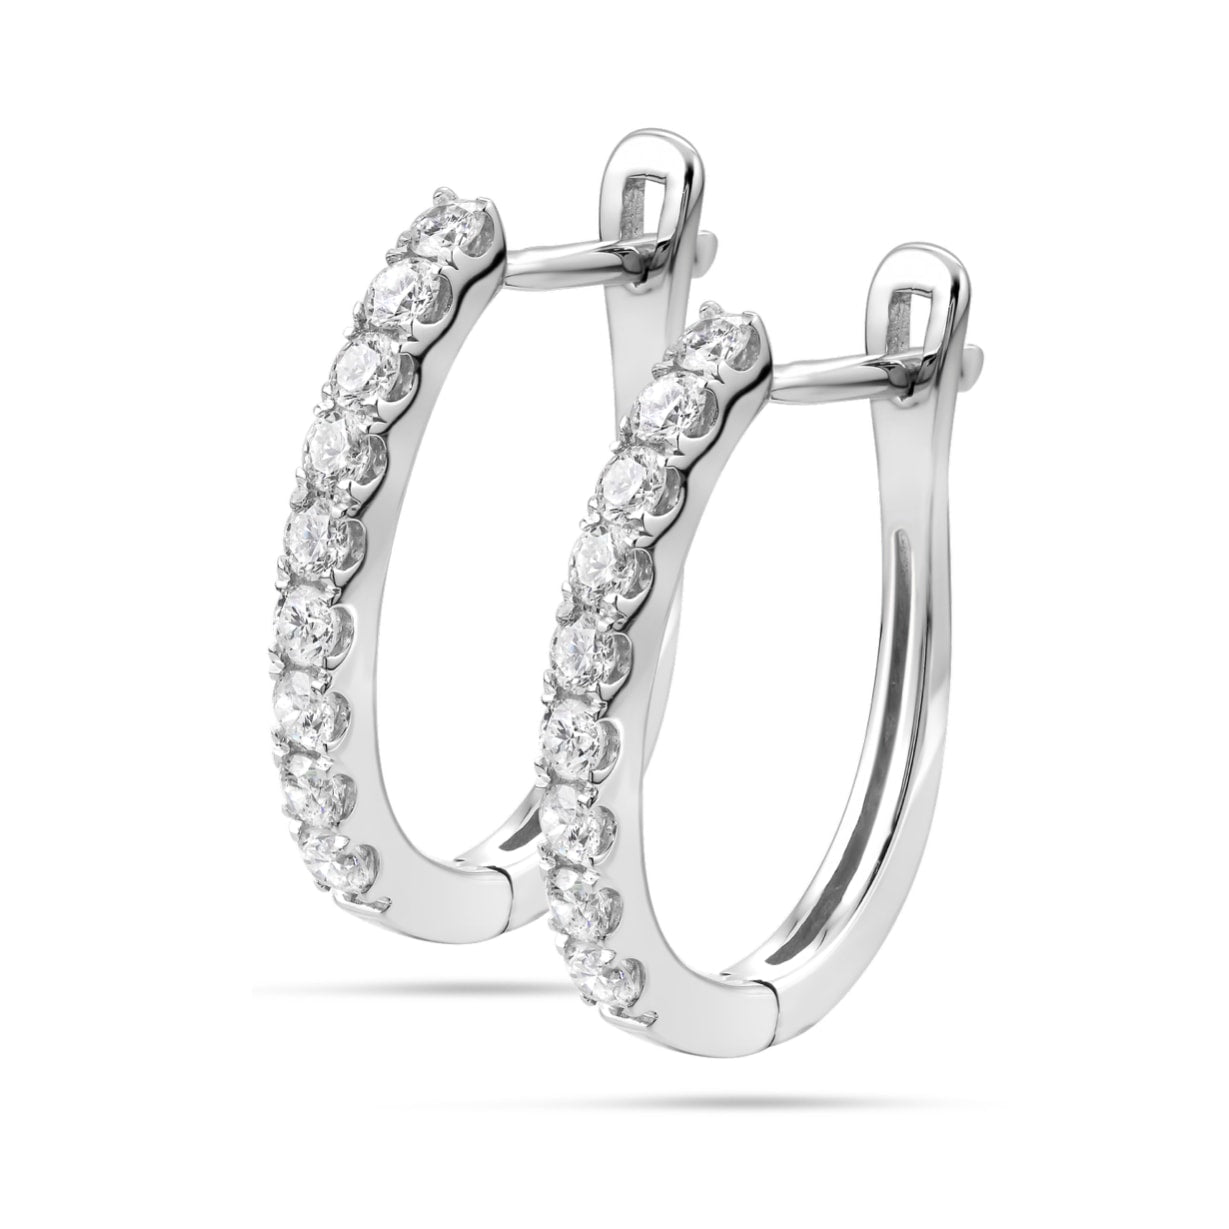 Sarlotte Tennis Diamond Earrings in 18k White Gold Vermeil